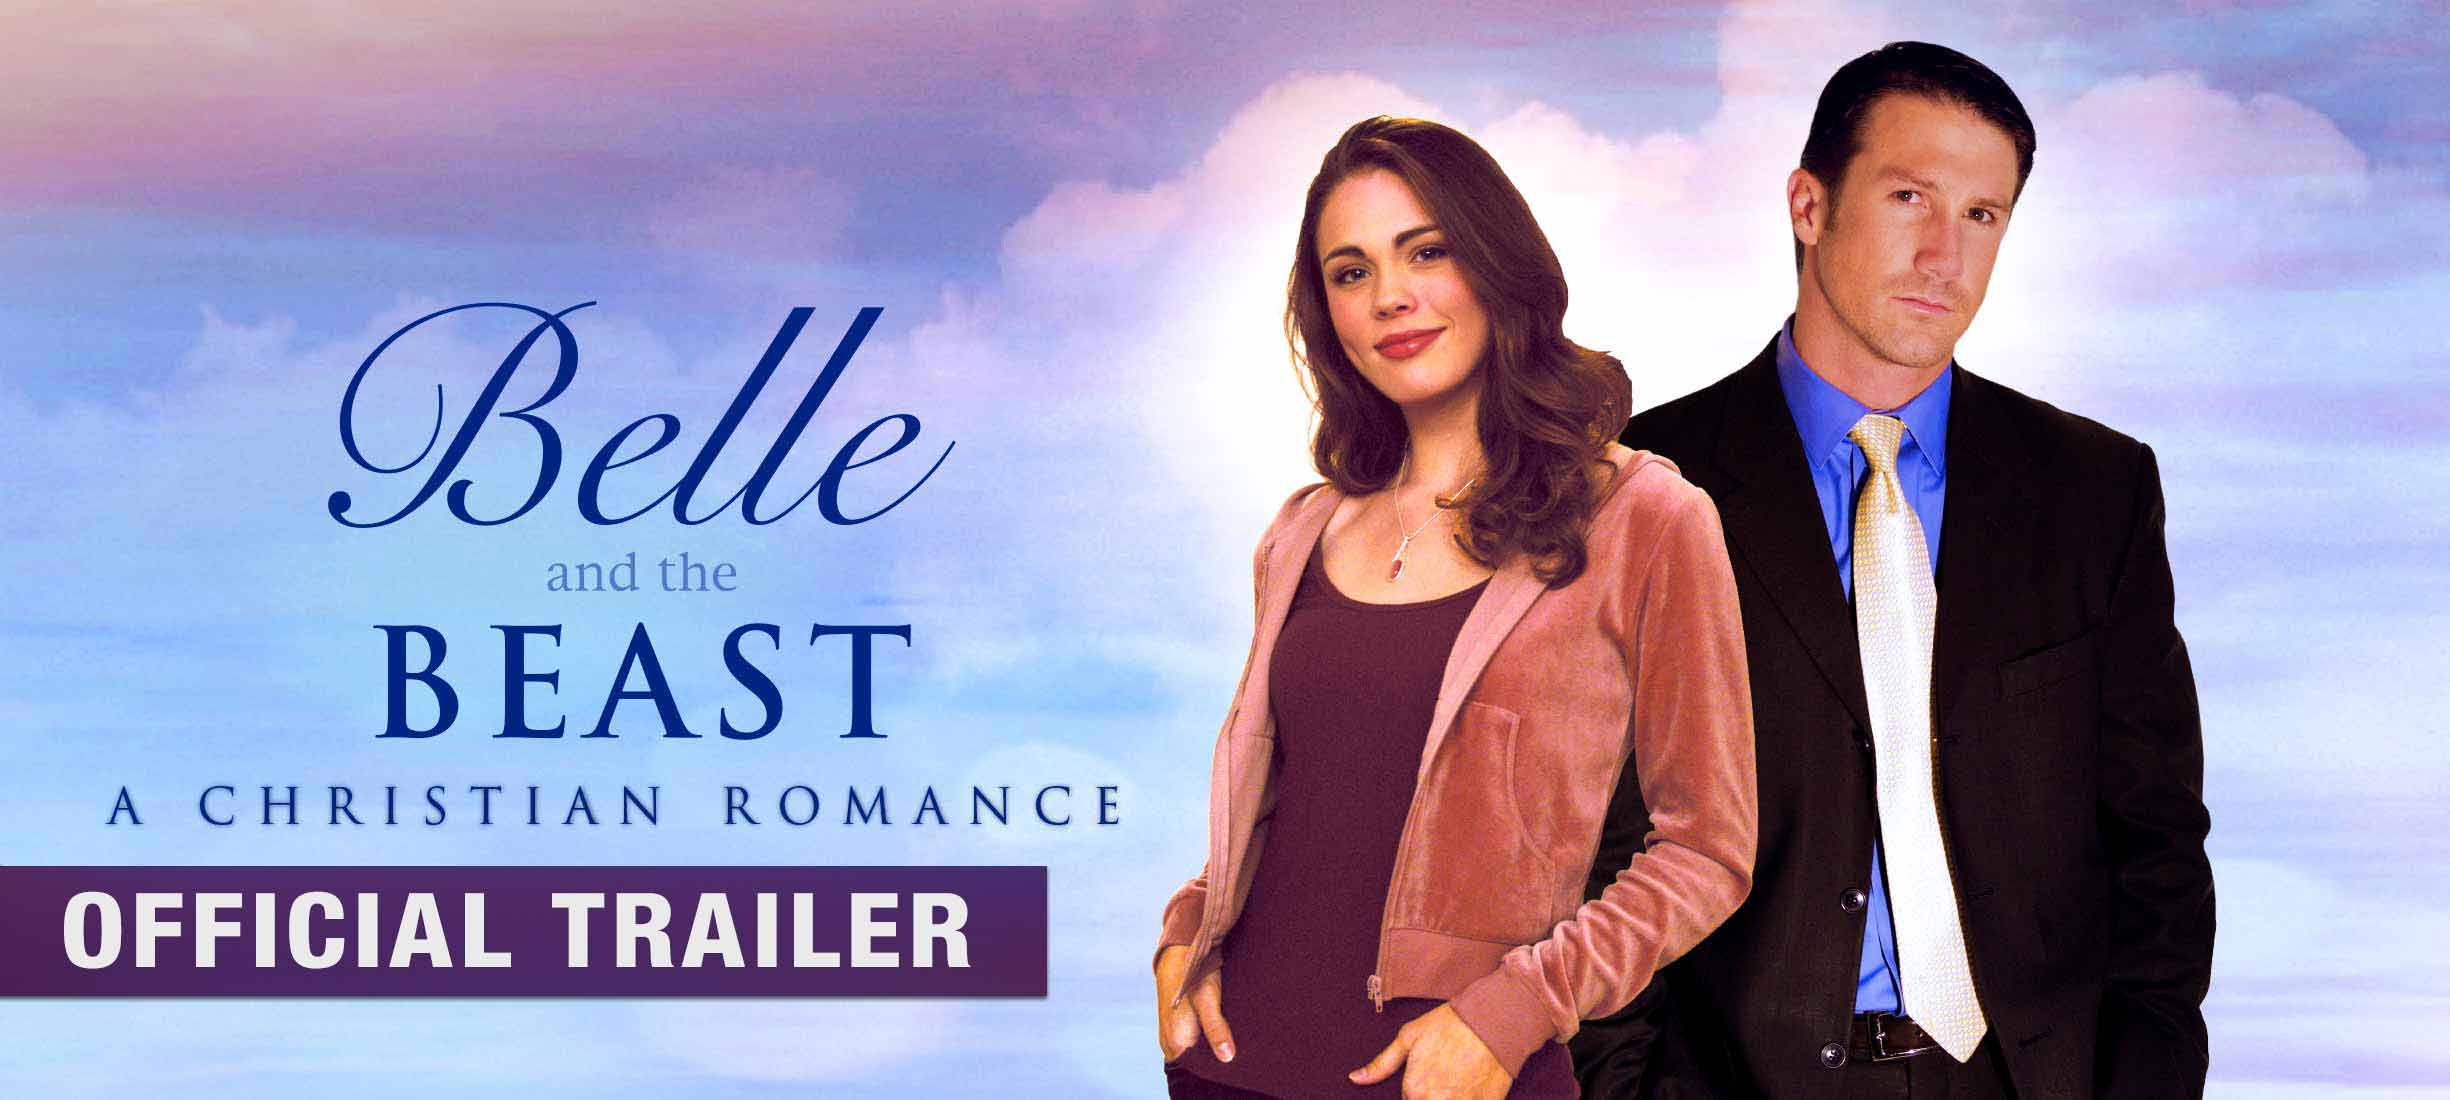 Belle And The Beast: Trailer